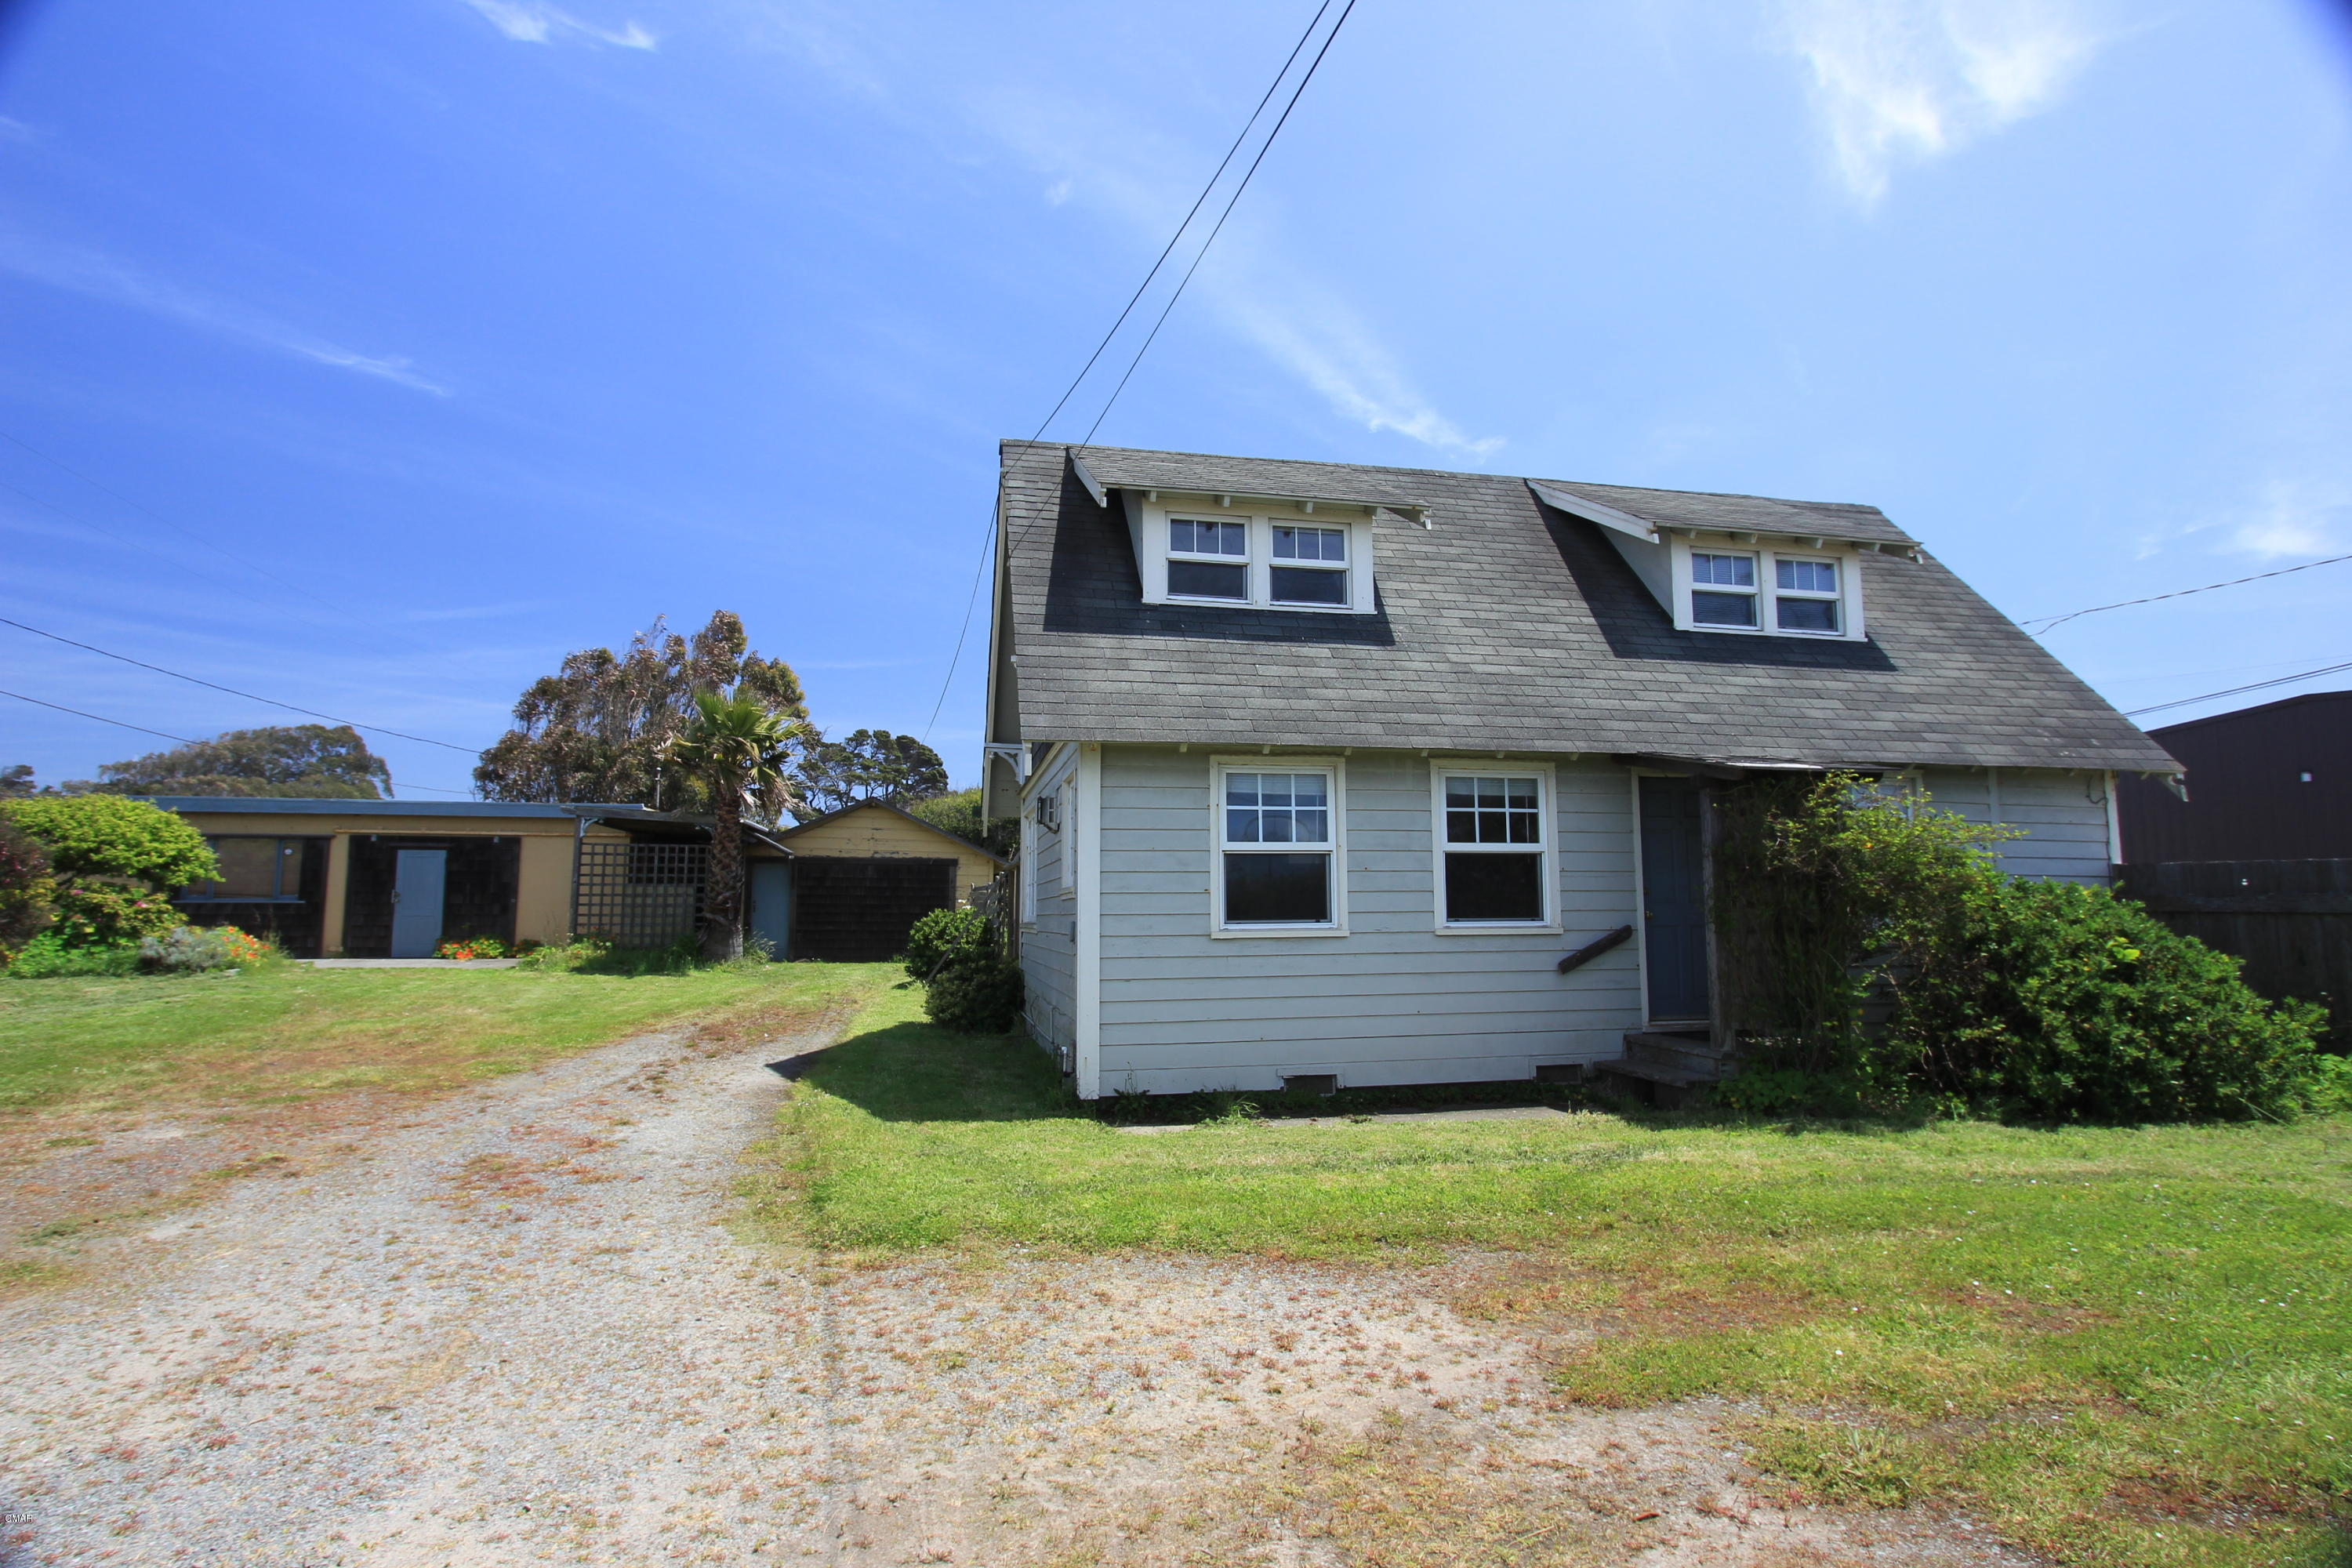 This is the ideal property for the sole proprietor wanting to live close to the shop. Cozy one bedroom home with detached, one car garage and 1,000+ s.f shop with propane heat and 1/2 bathroom. This bungalow has a sunny loft with sweet ocean views. Propane Jotul stove in the living room is an economic and convenient heat source. Zoning of this property is ideal for living and having a light industrial business with Fort Bragg North Main Street Frontage. Check with City Planning for your specific purposes.